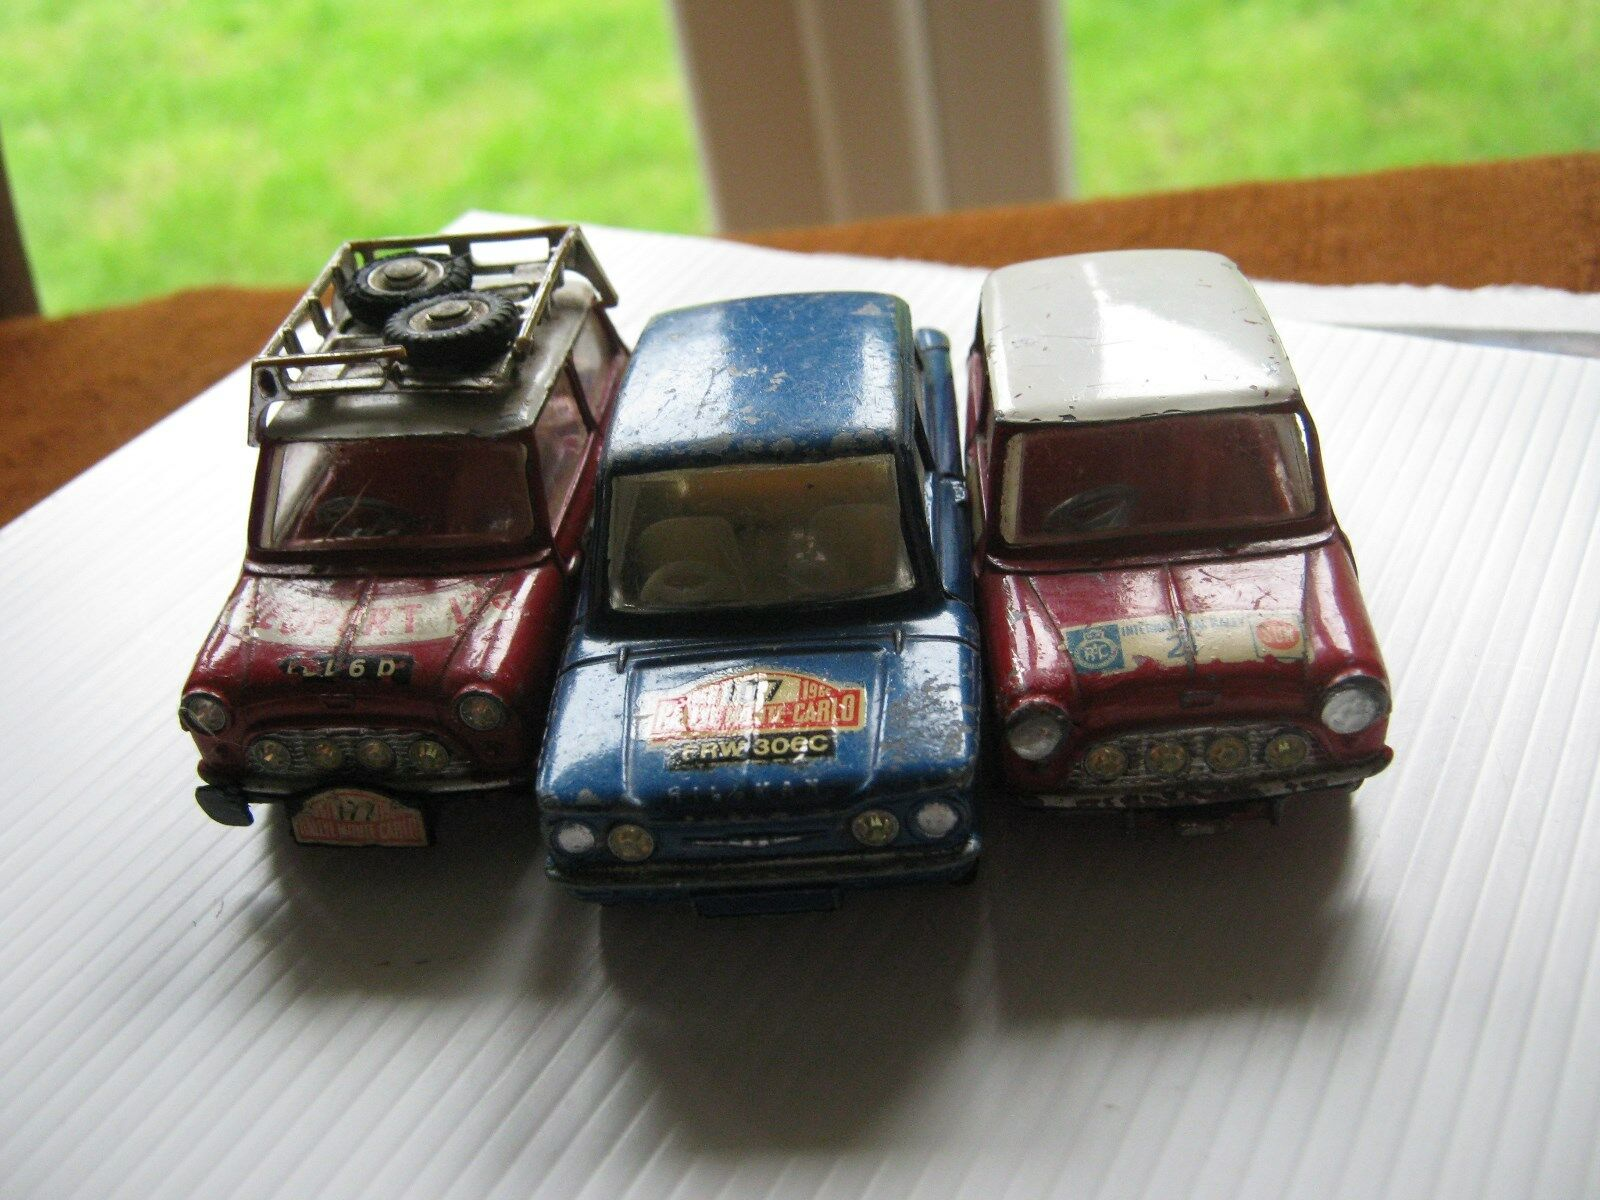 CORGI 328 333 339 ORIGINAL RALLY CARS CARS PLAYWORN CONDITION AS SHOWN